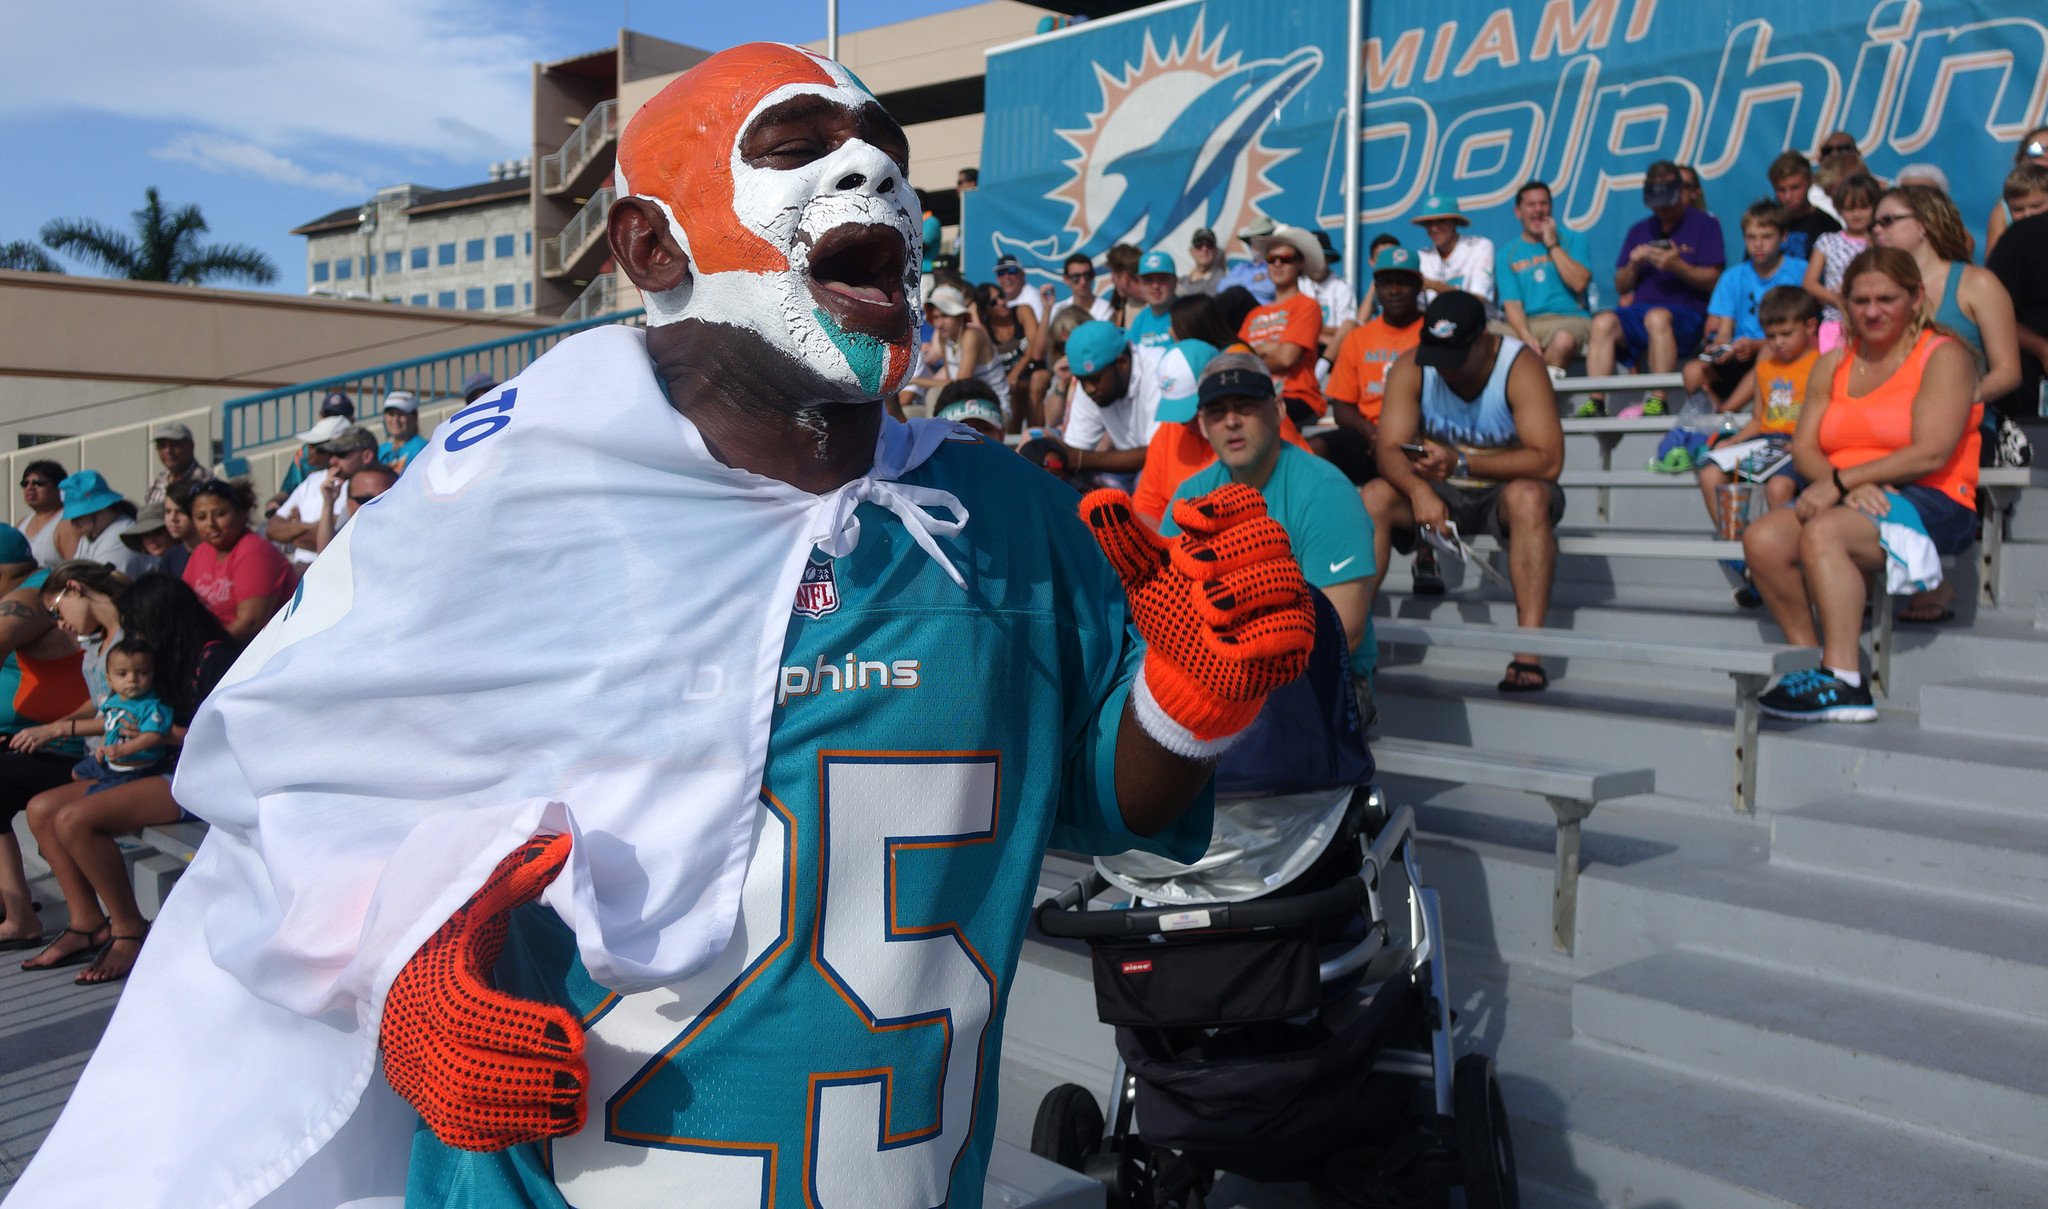 Sfl-dolphins-adding-a-canopy-over-seating-area-for-fans-at-training-camp-20160630